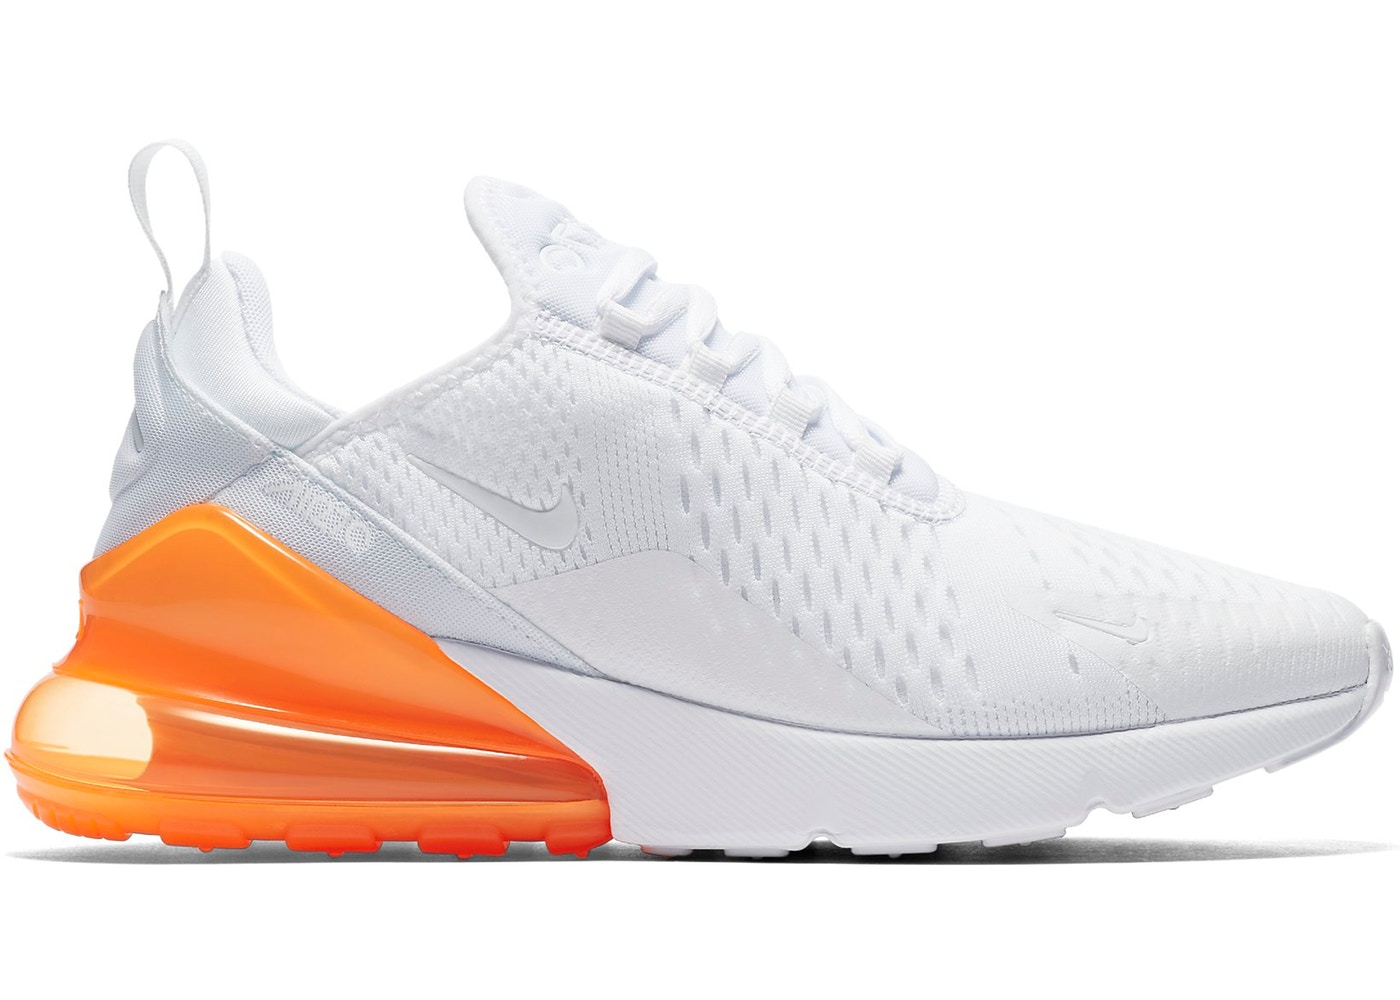 online retailer 5b1d7 25709 Air Max 270 White Pack (Total Orange)